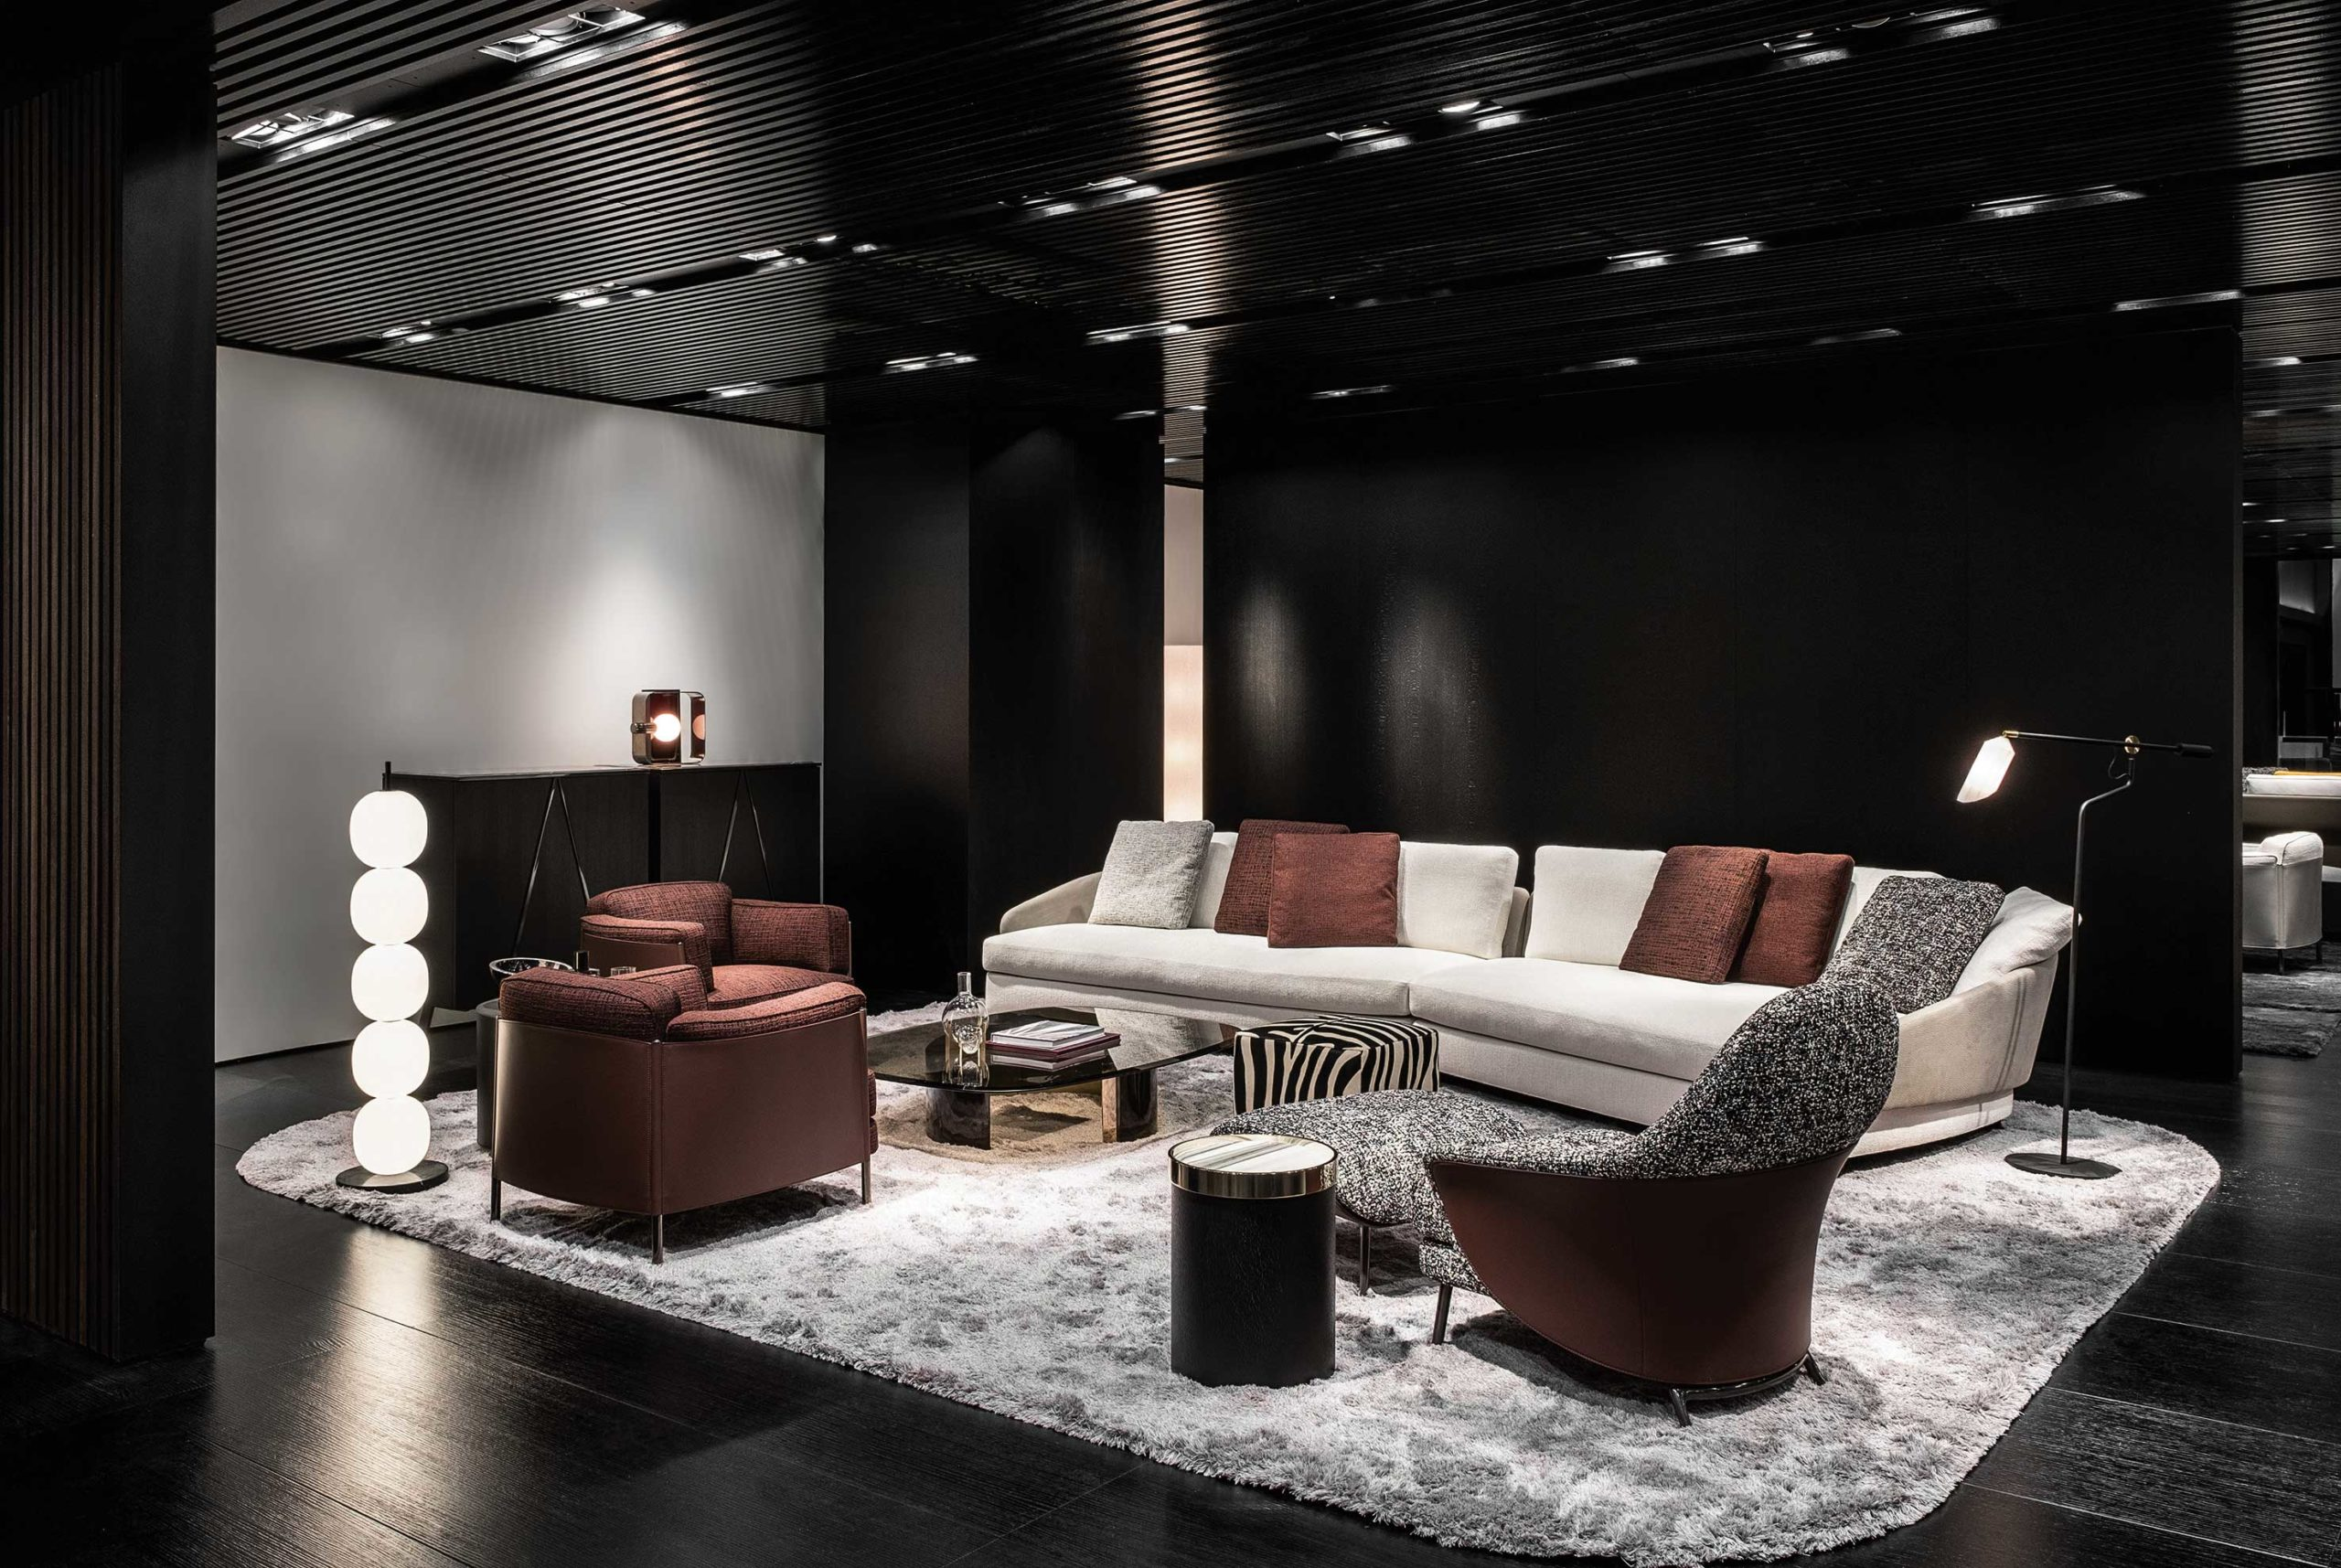 Minotti Immcologne 2020 A New Take On The Architectural Language Moie